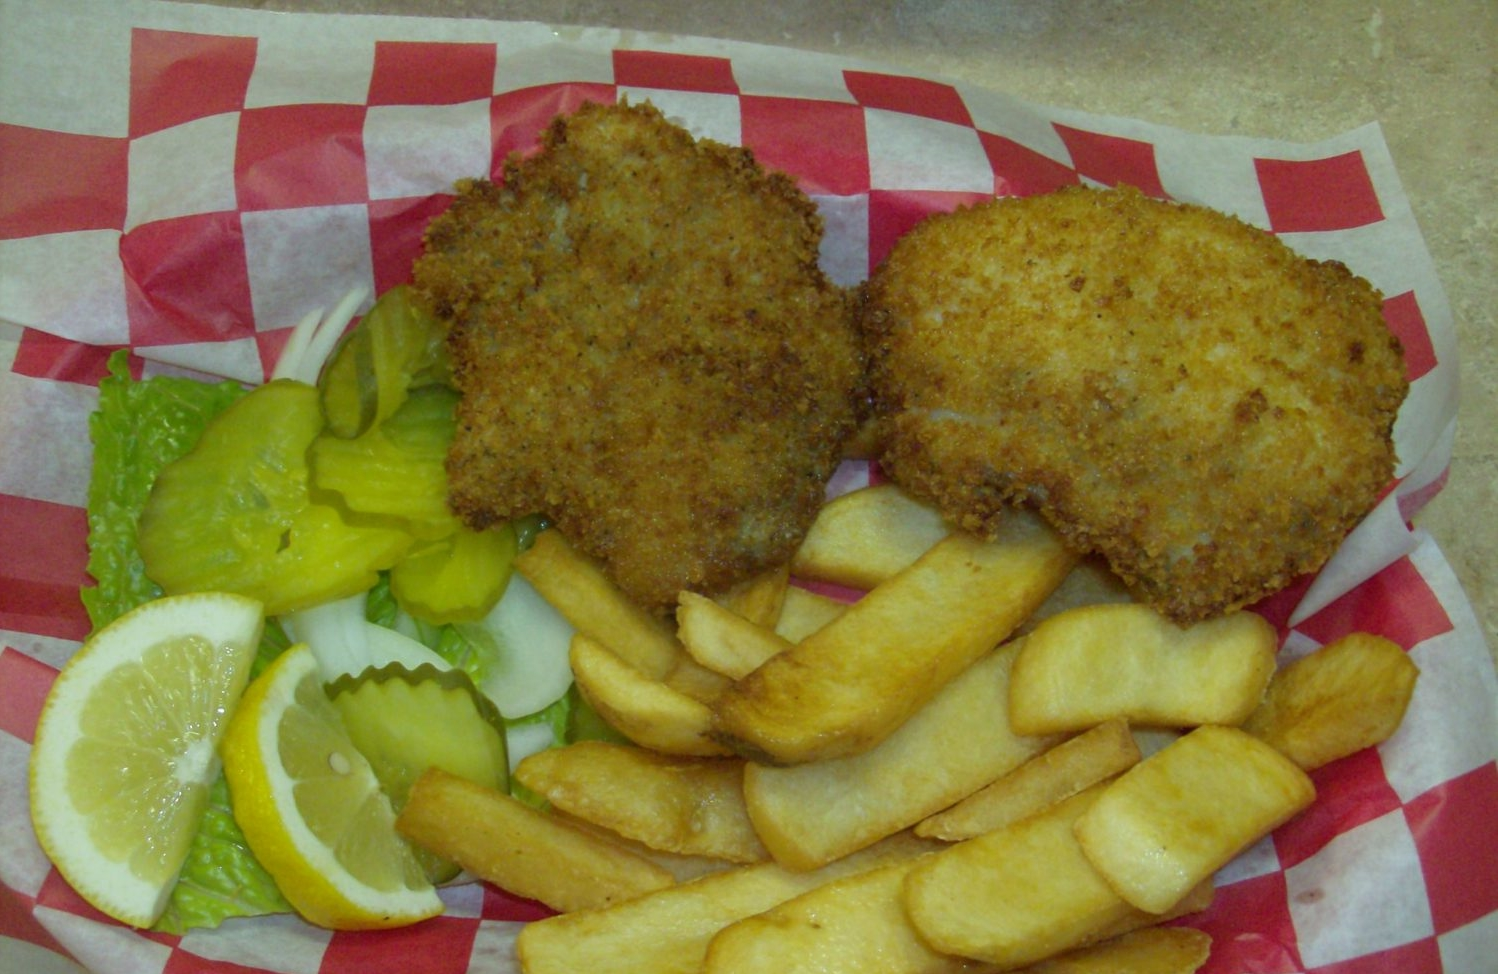 Fish Plate with Fries